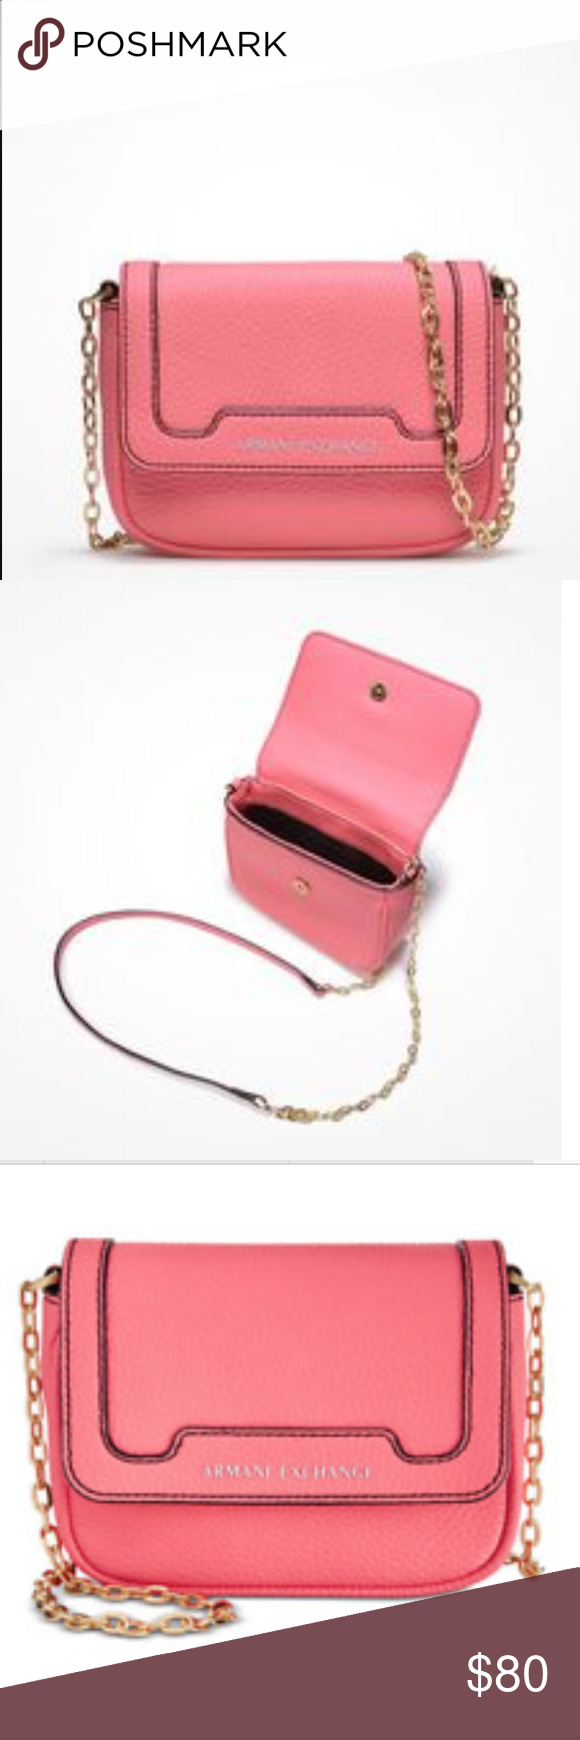 Armani Exchange Crossbody Bag Small in size but big in style. This sleek crossbody  bag e647038a5b3aa